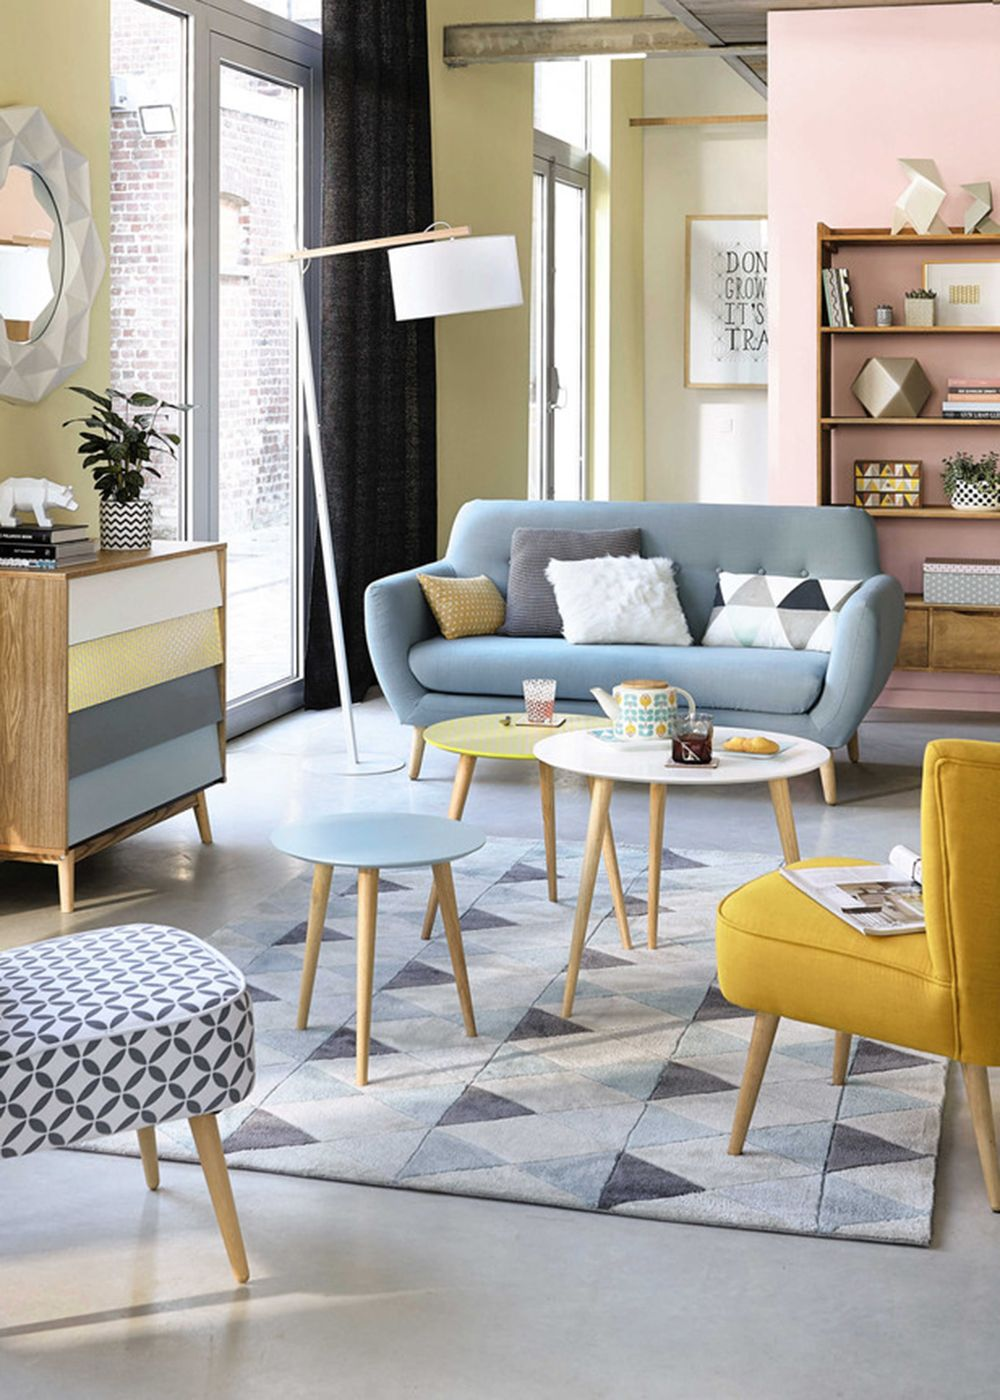 Lovely Pastel Living Room Inspiration With Scandinavian Style | Maisons Du Monde Amazing Pictures